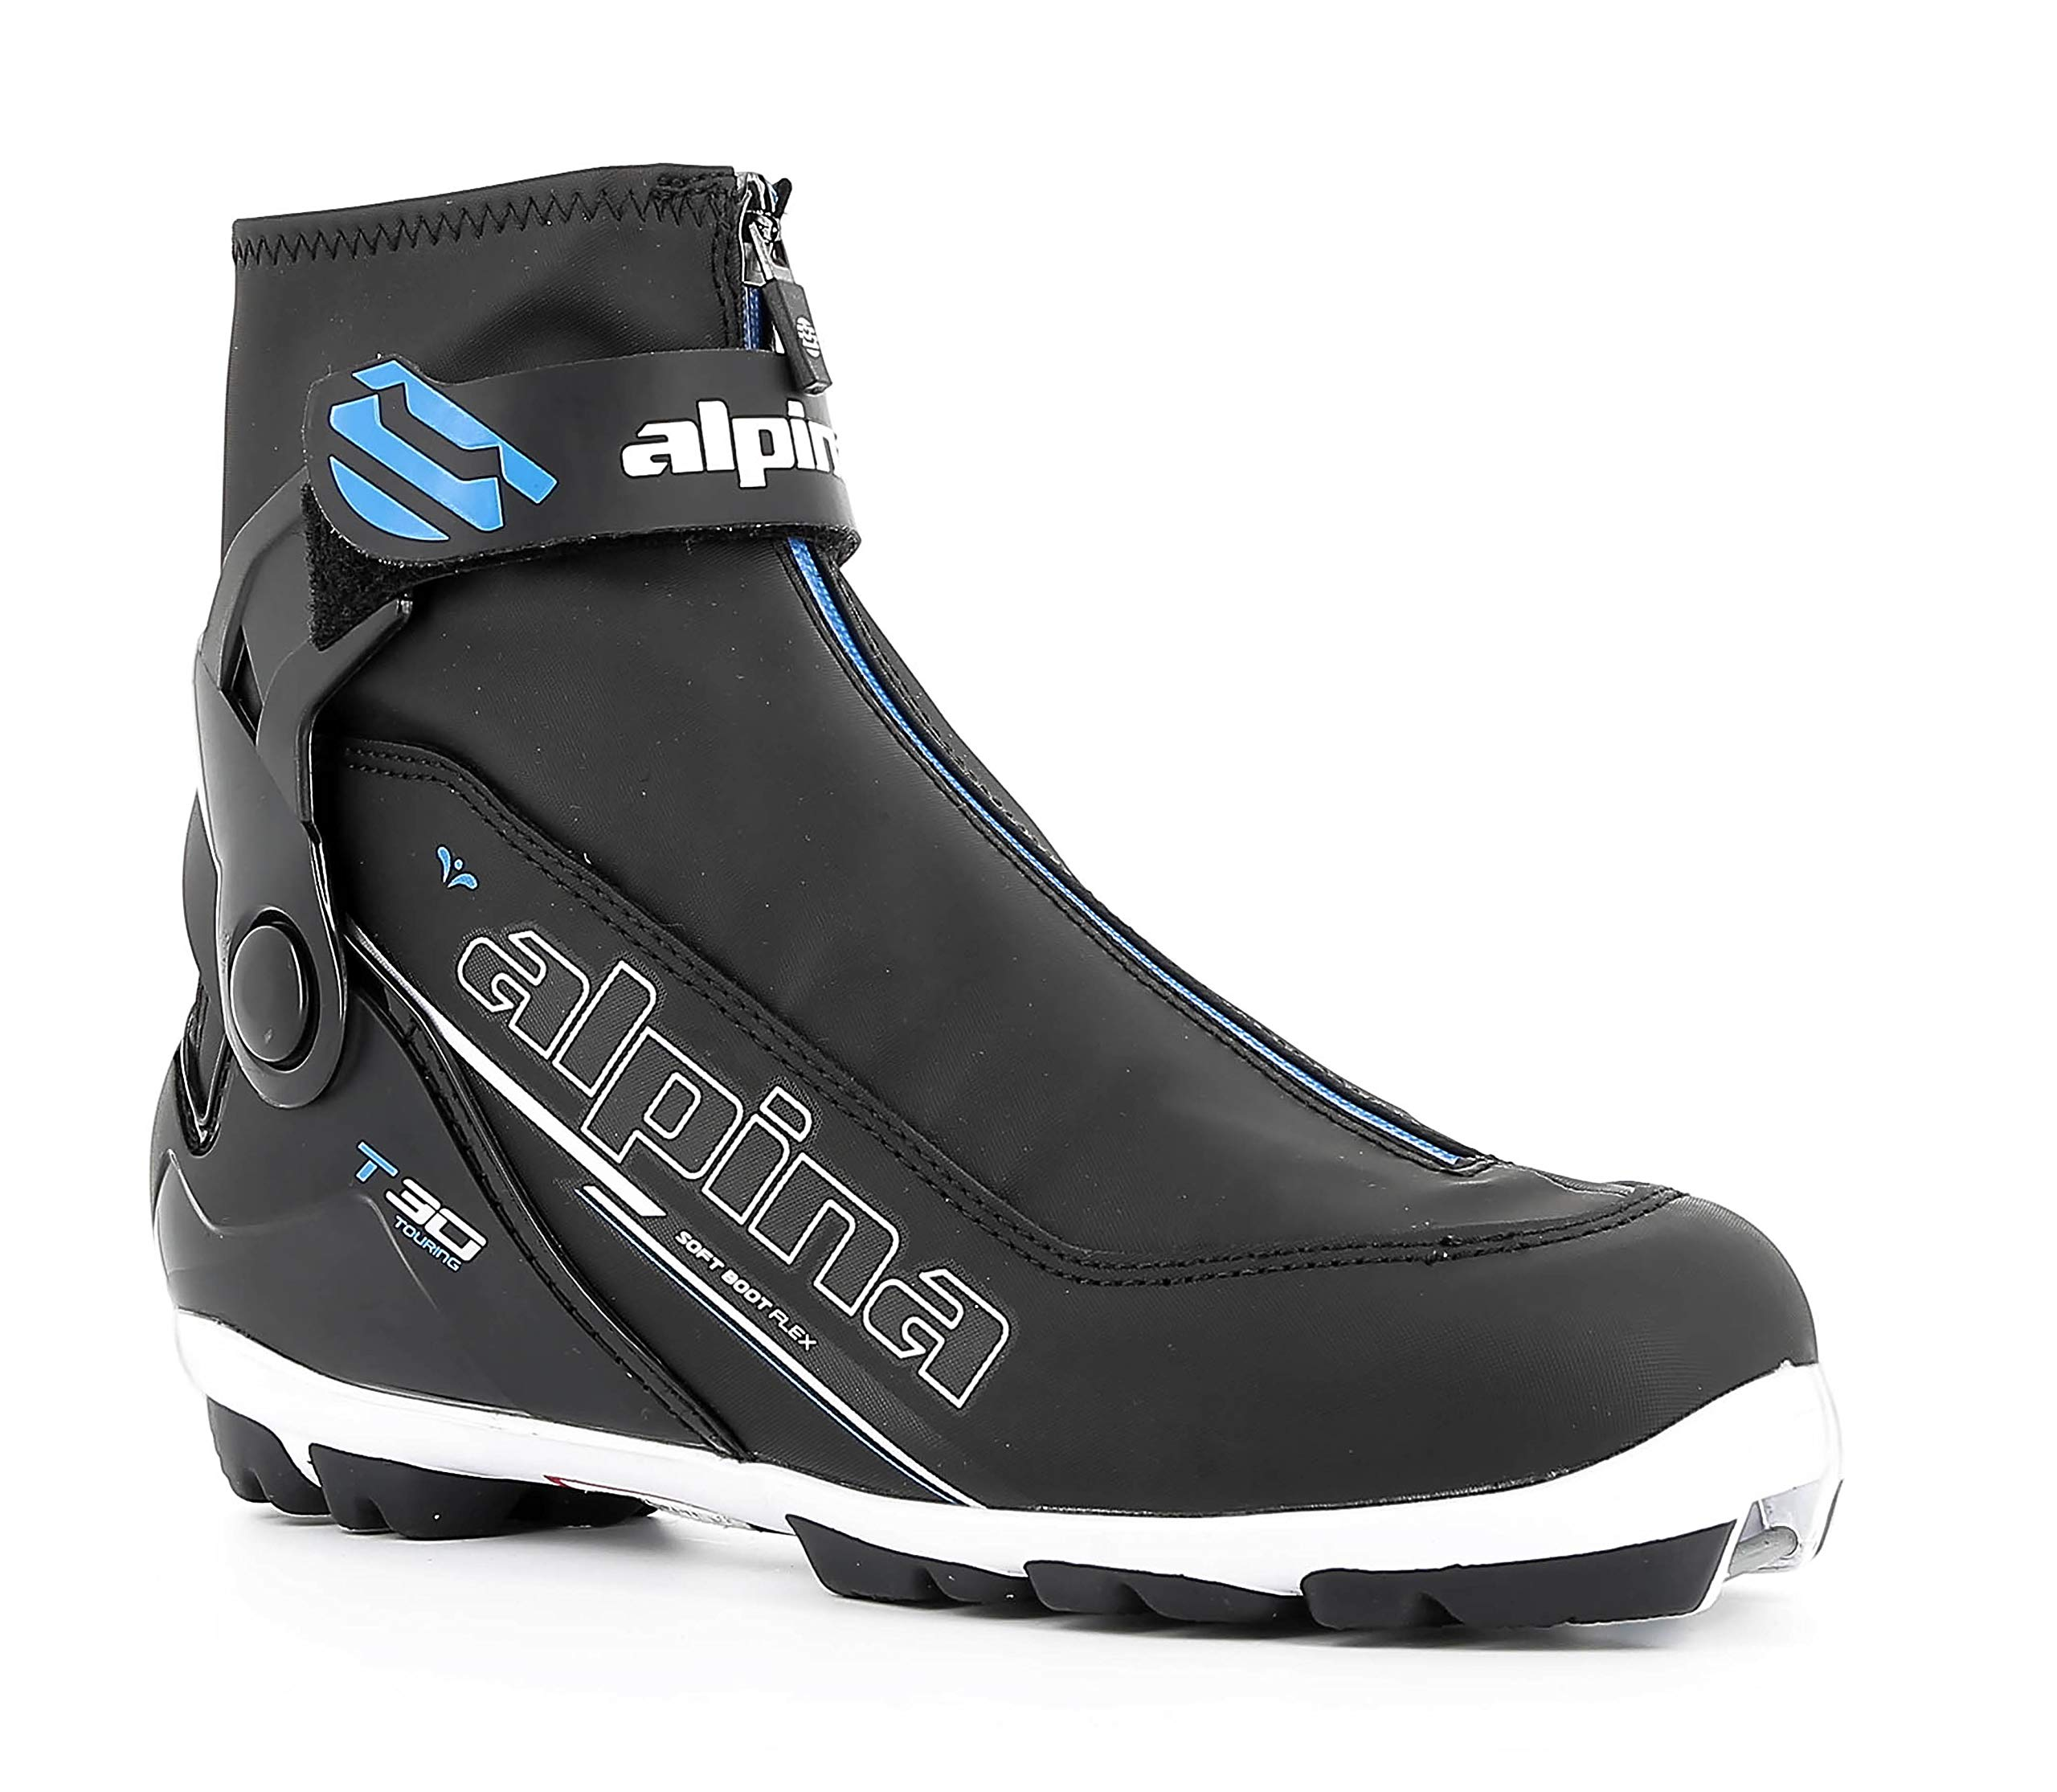 Alpina Sports T30 Eve Cross Country Touring Ski Boots, Black/White/Blue, Size 35